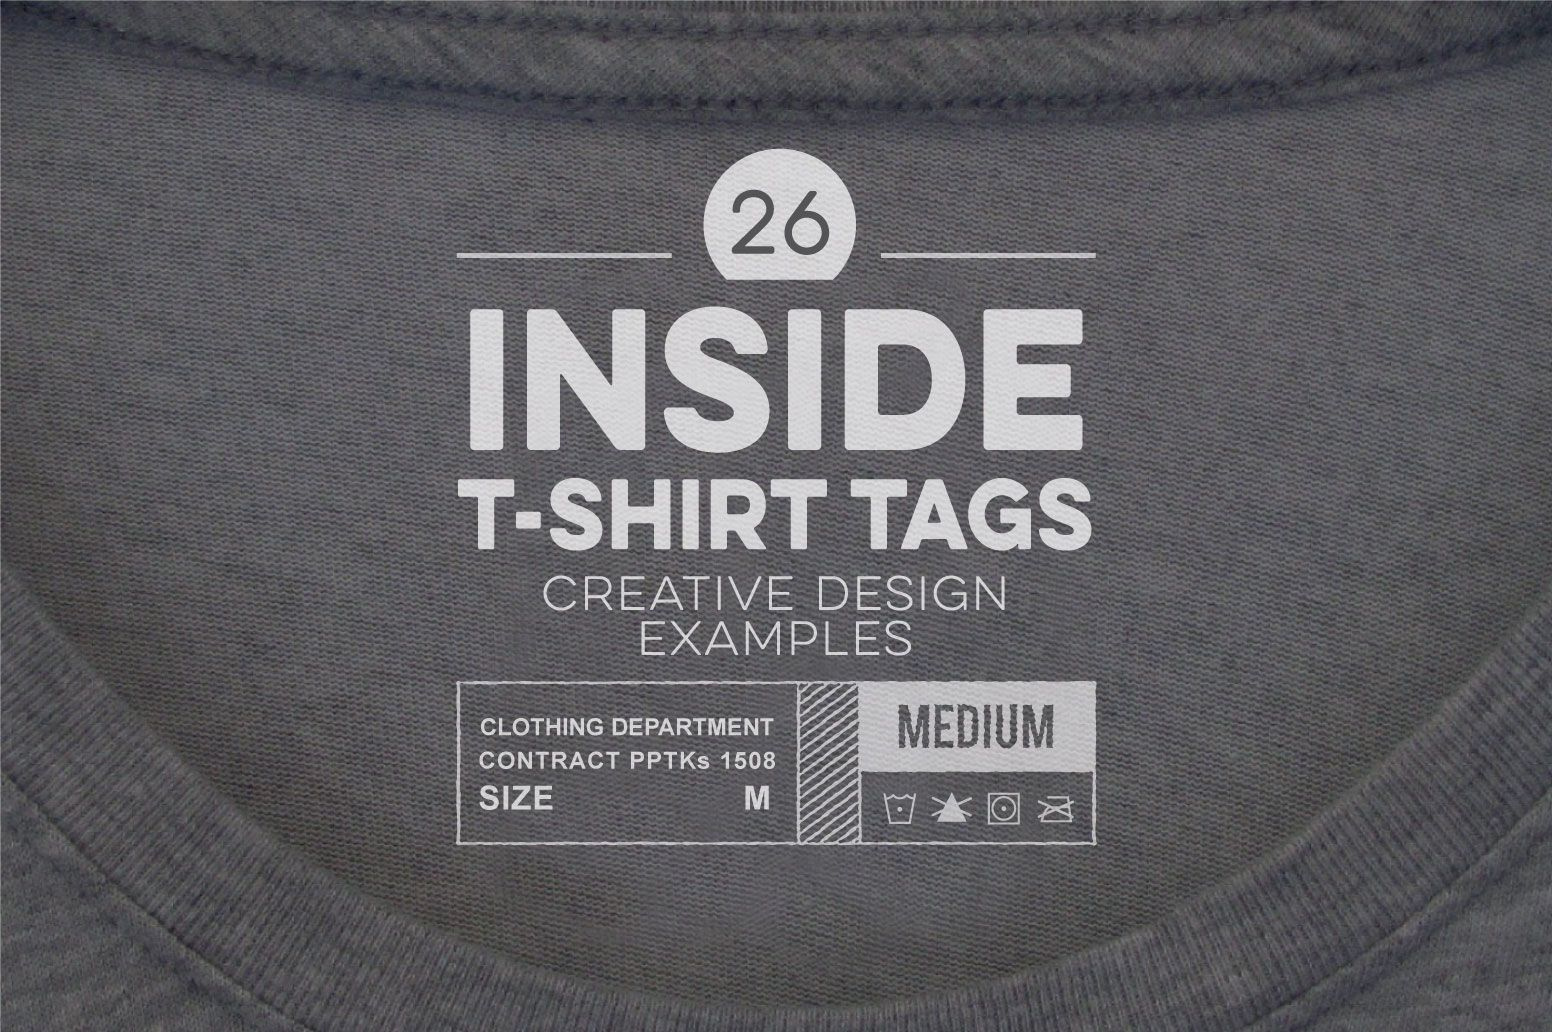 Download Find The Perfect Inside T Shirt Tag Design With 26 Of The Most Outstanding Inside T Shirt Tag Examples From A T Shirt Label Clothing Labels Design Shirt Label